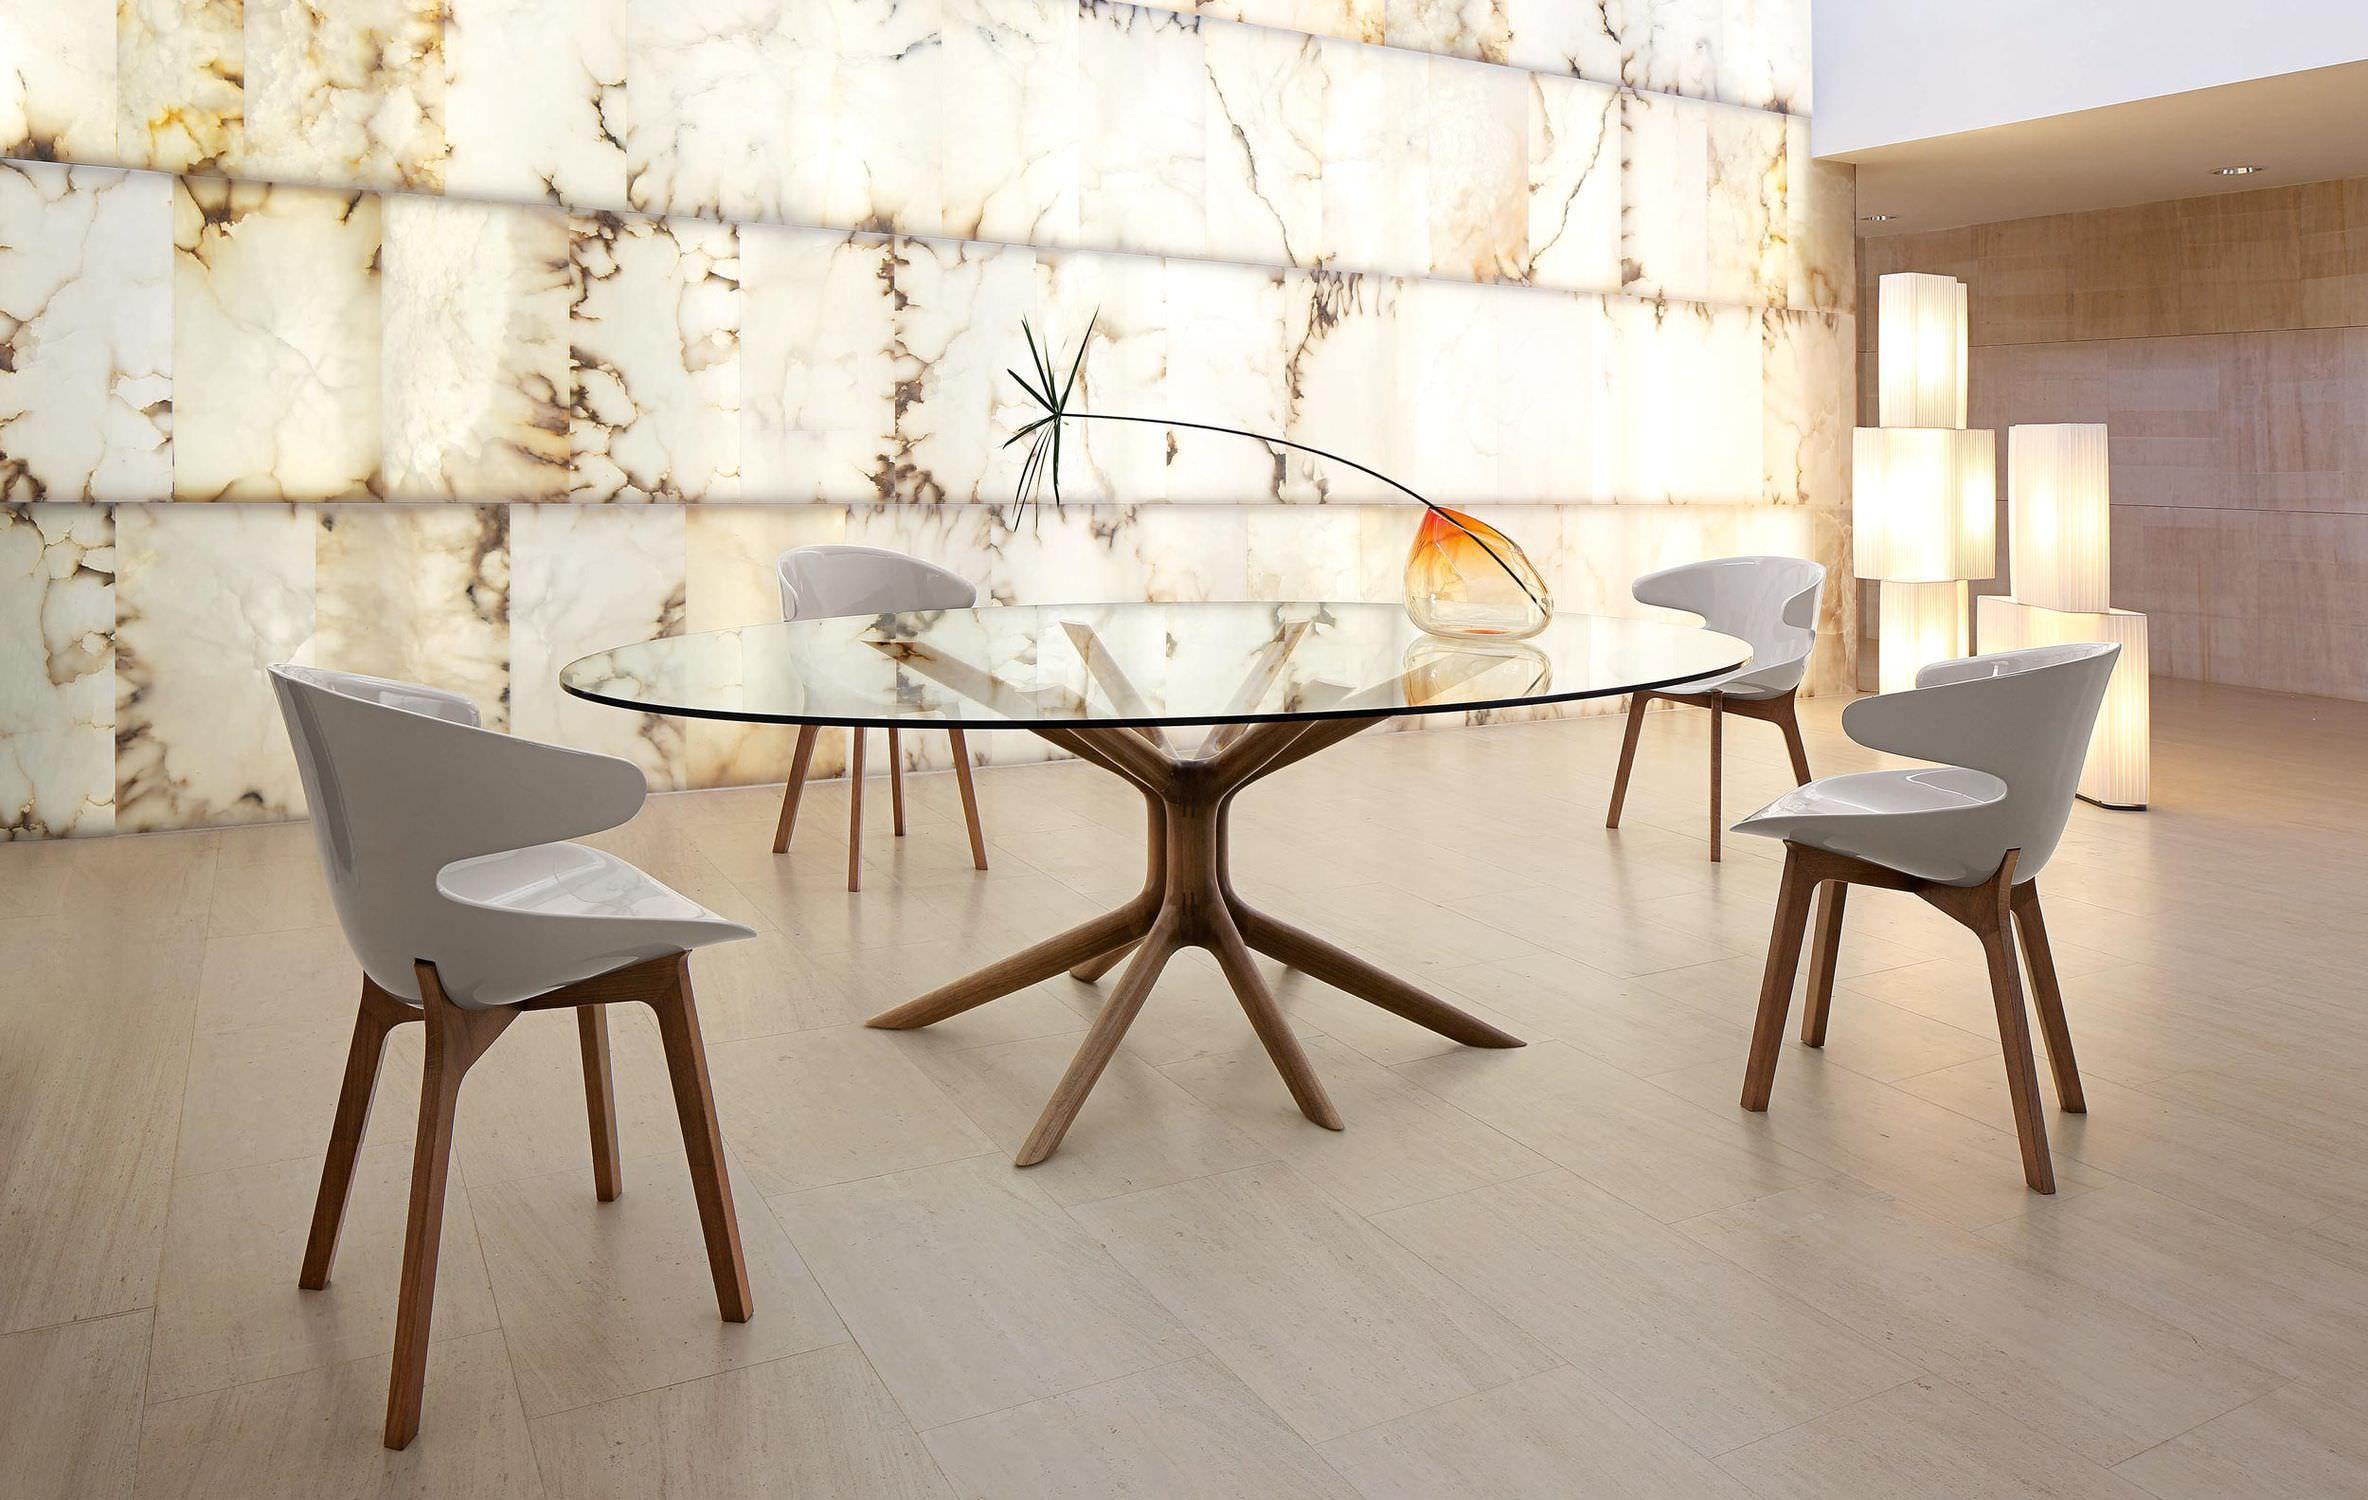 Roche bobois google search furniture pinterest google search luxury furniture and for Table ardoise roche bobois